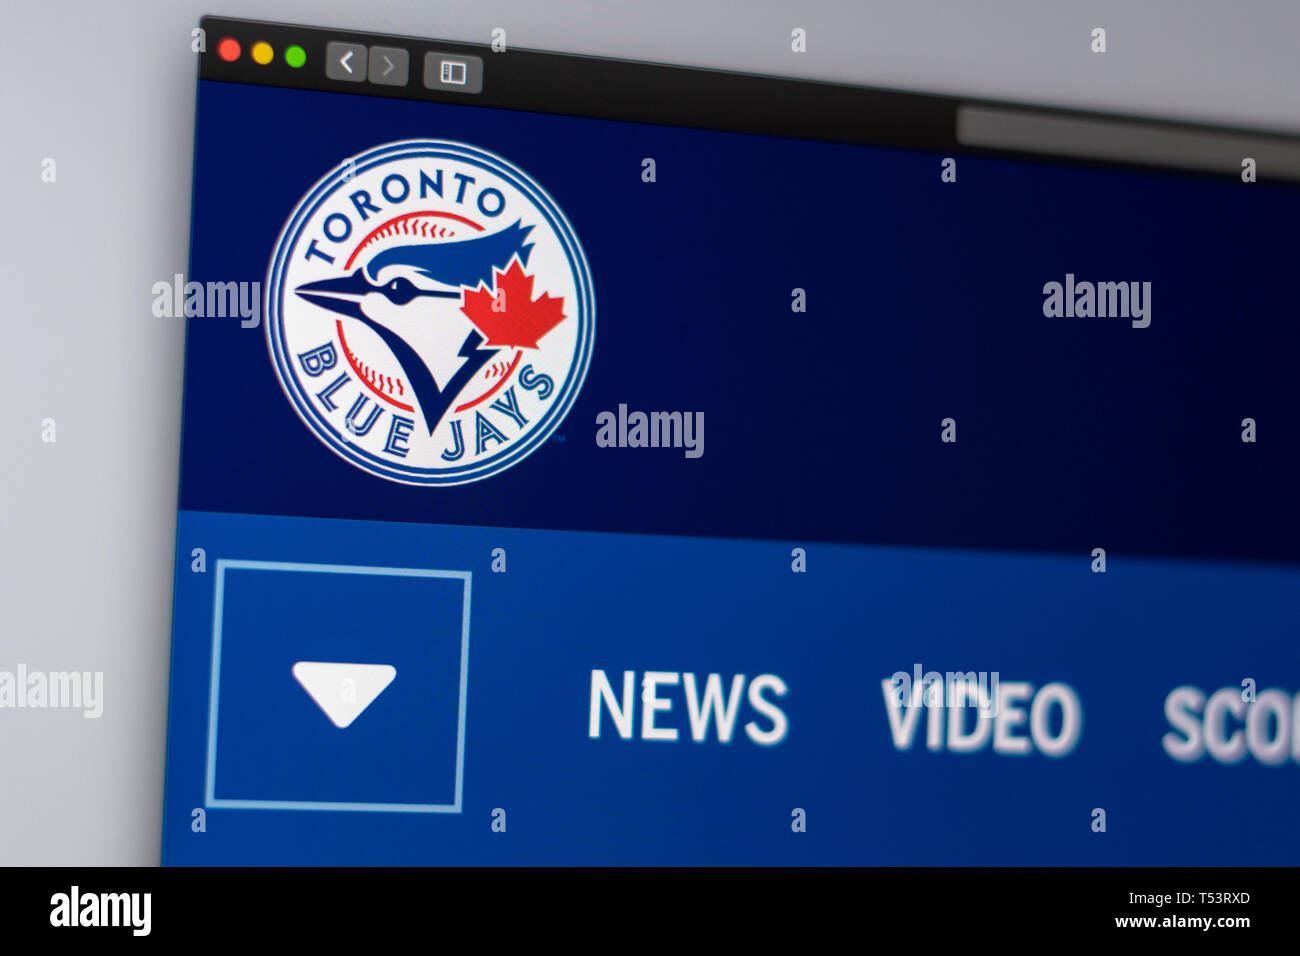 Baseball team Toronto Blue Jays website homepage. Close up of team logo. Can be used as illustrative for news media or other websites - Stock Image